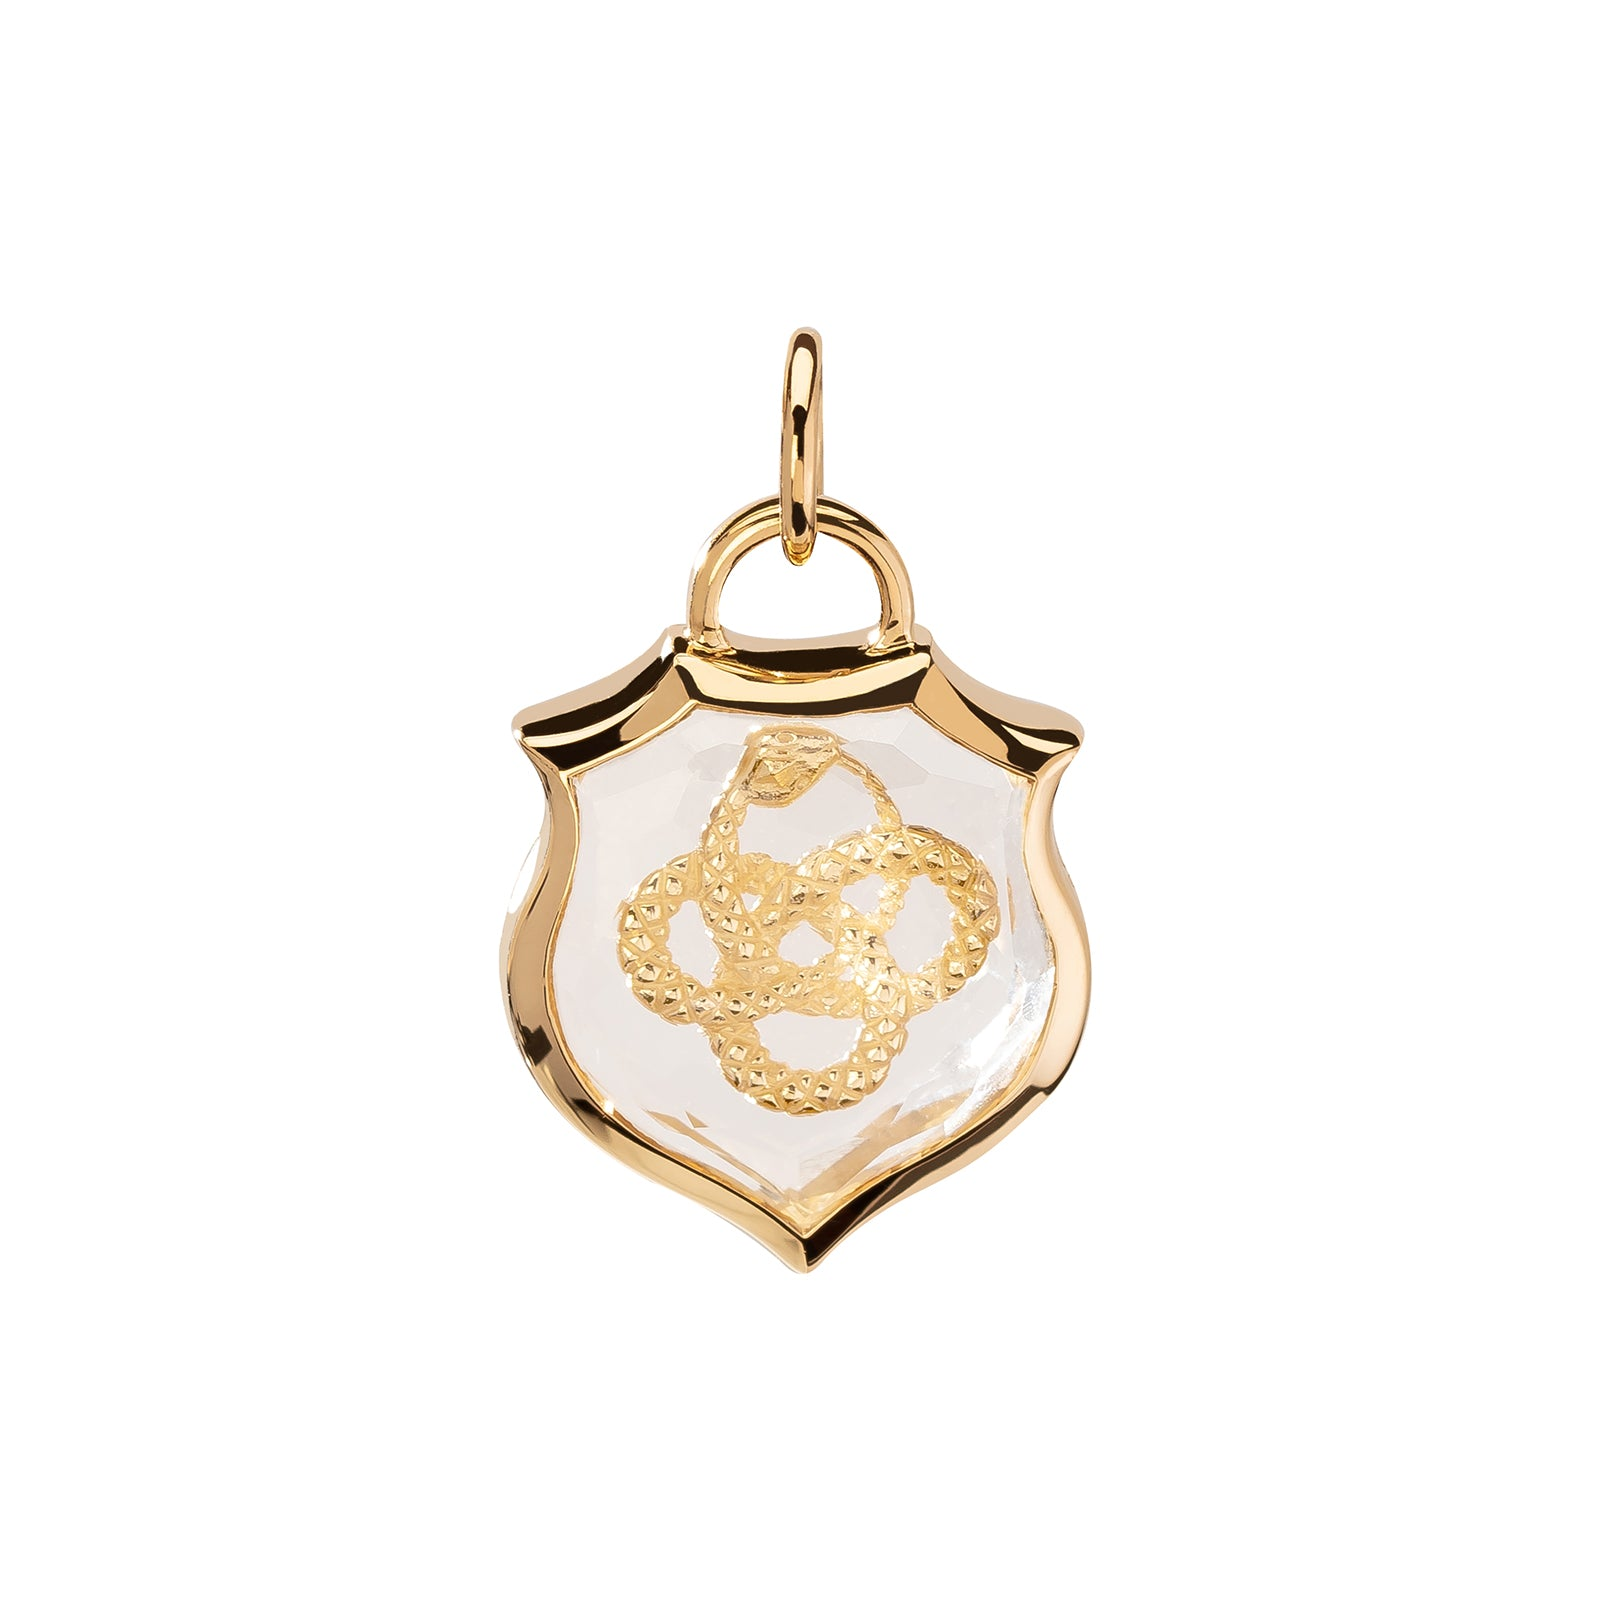 Foundrae Small Sealed Gemstone Crest Pendant - Snake - Charms & Pendants - Broken English Jewelry